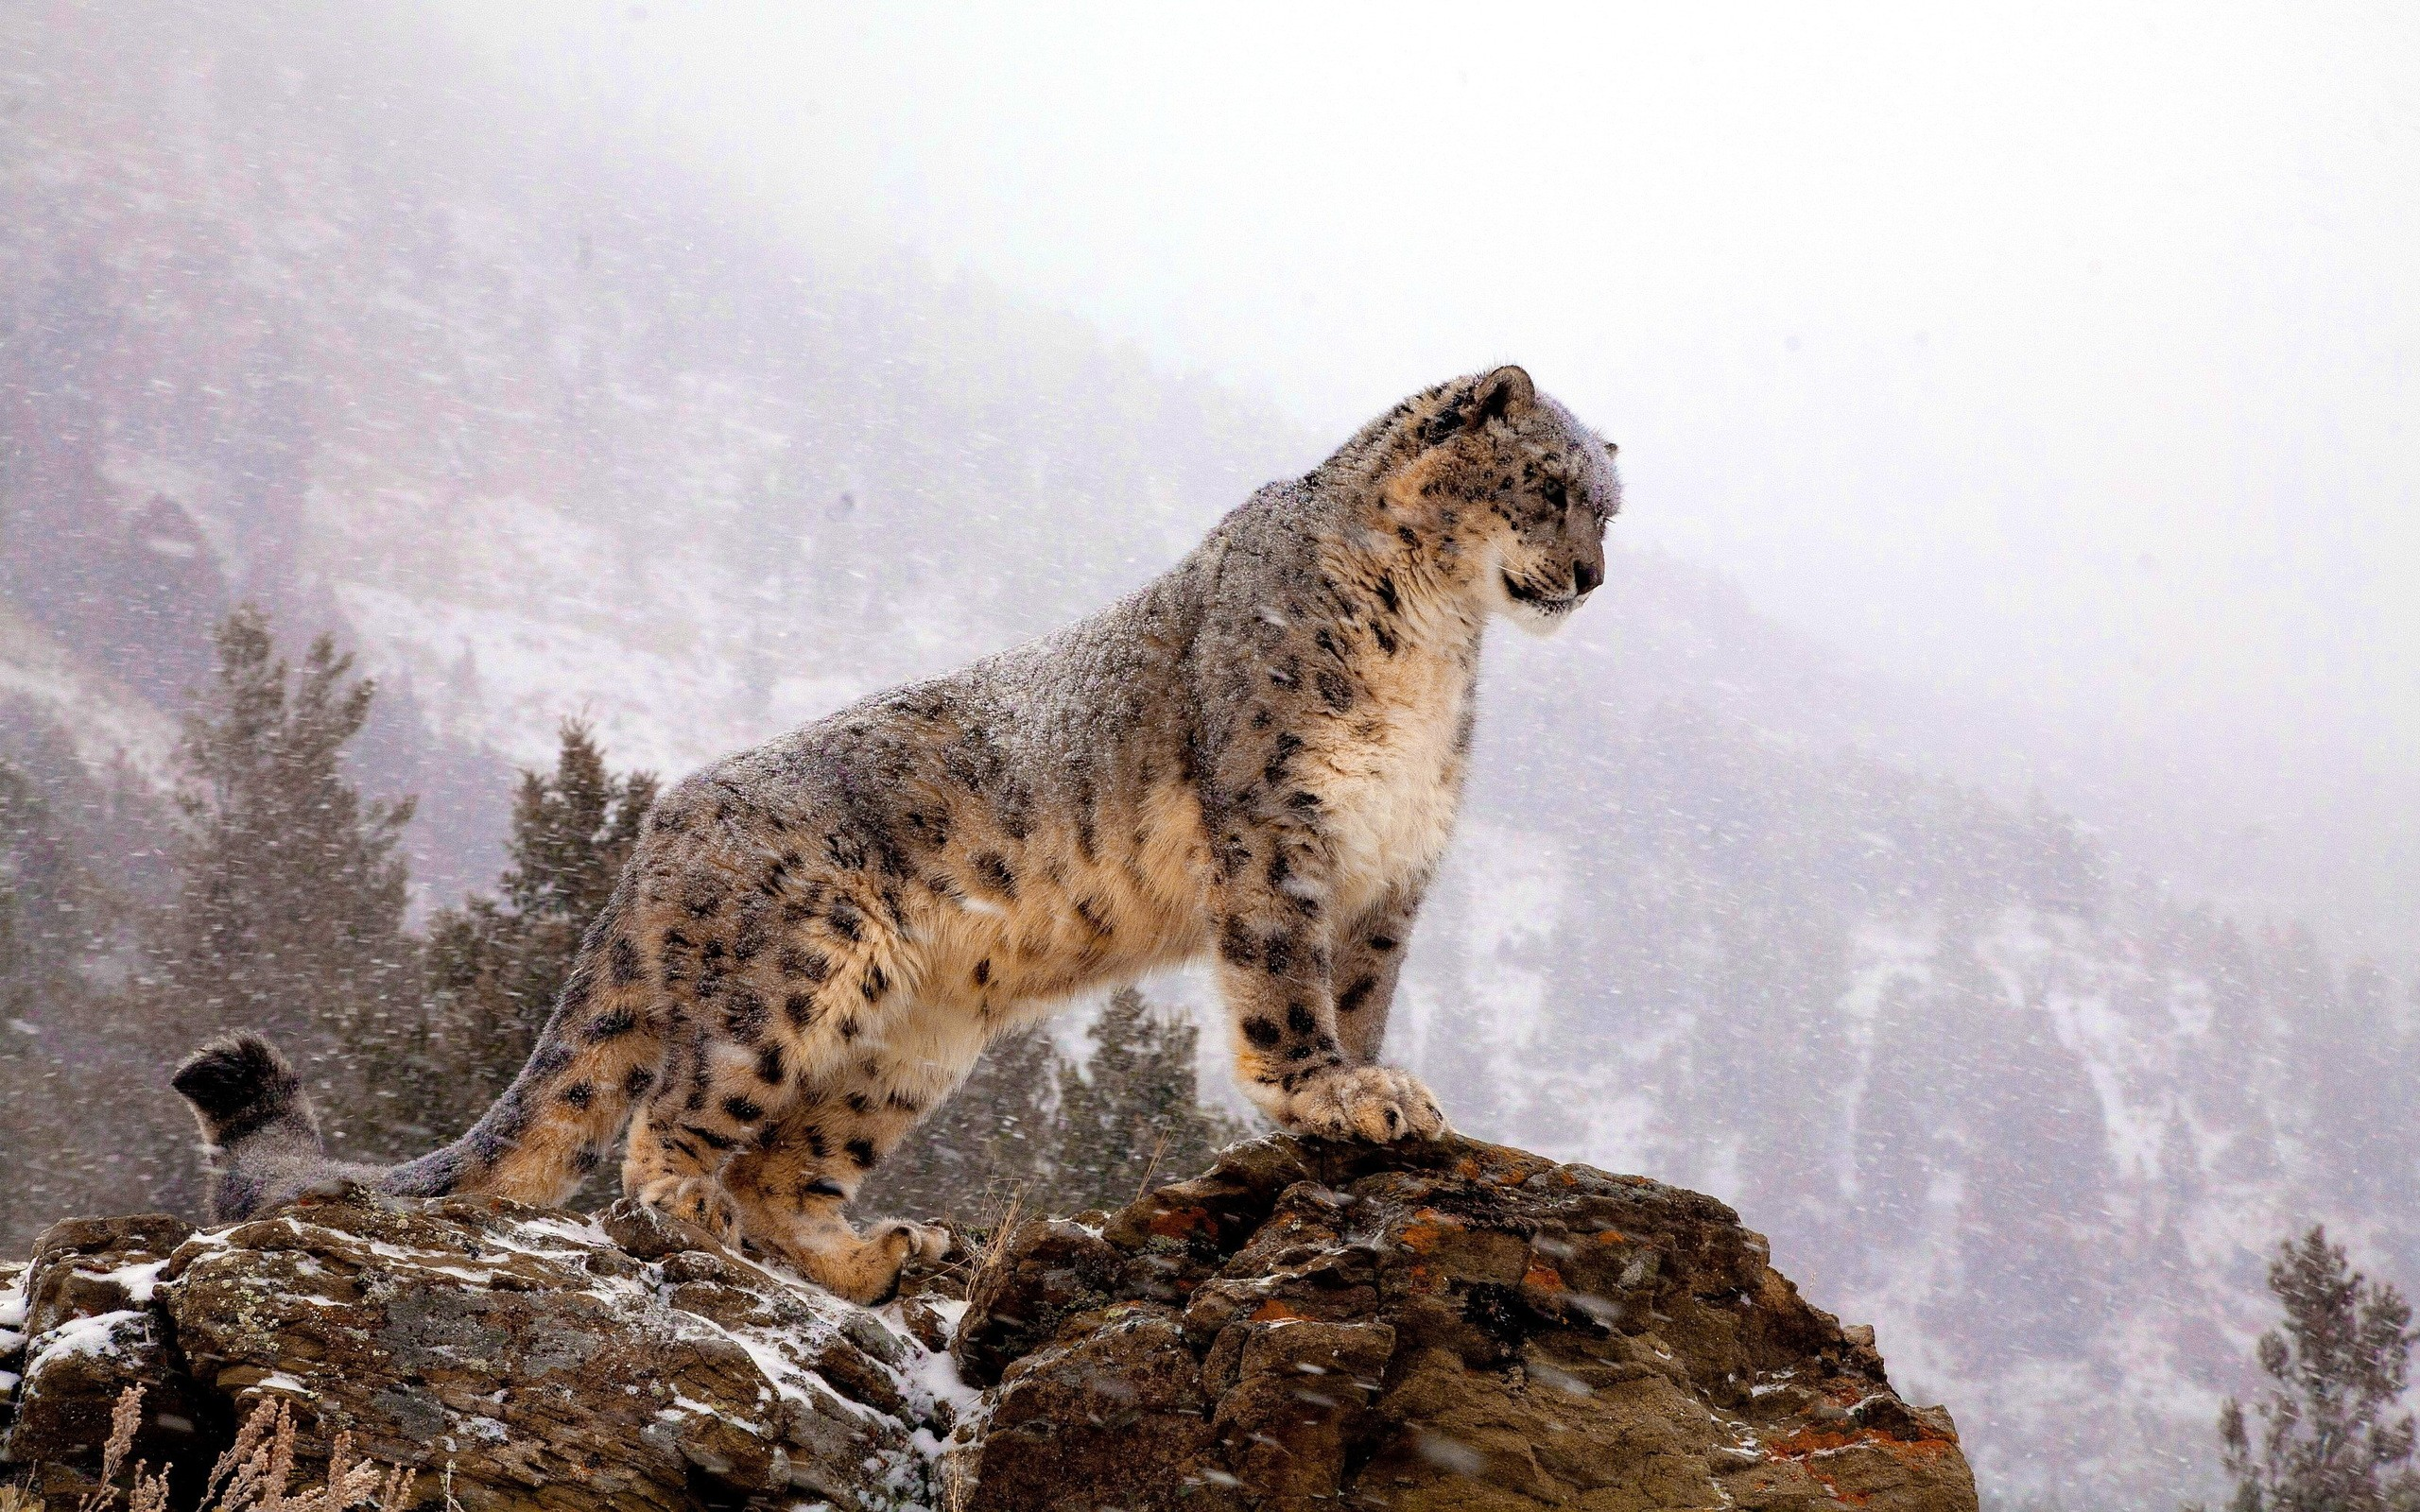 Snow Leopard HD Wallpaper Free Download